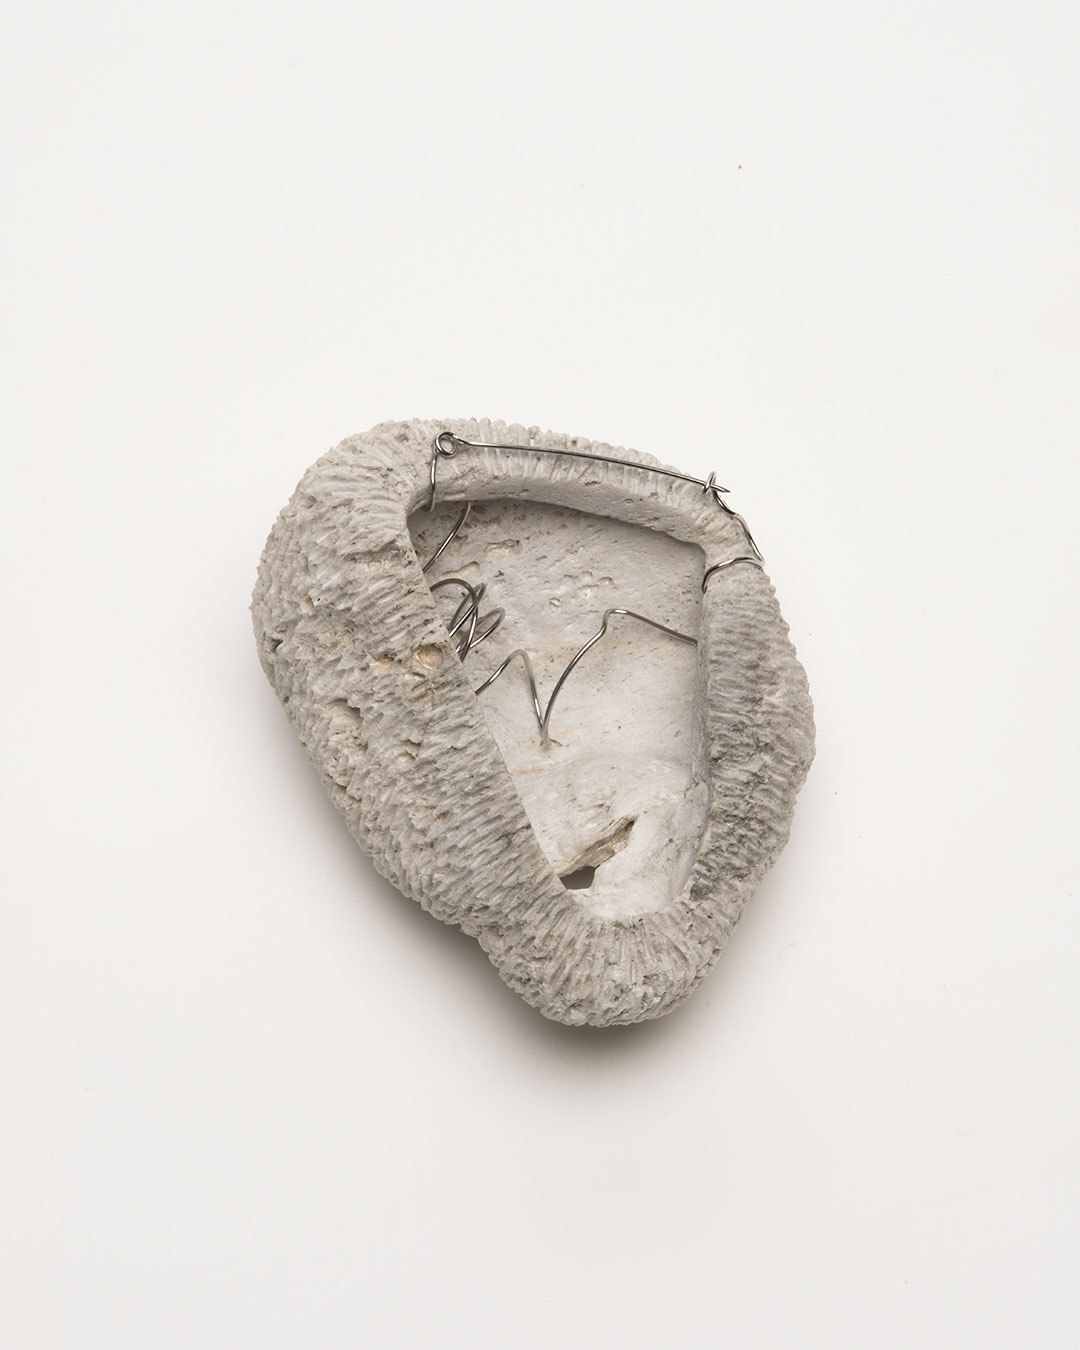 Vivi Touloumidi, What Will the Cosmos Say? 2013, brooch; pumice stone, steel, 110 x 80 x 70 mm, €280 (Image: back)